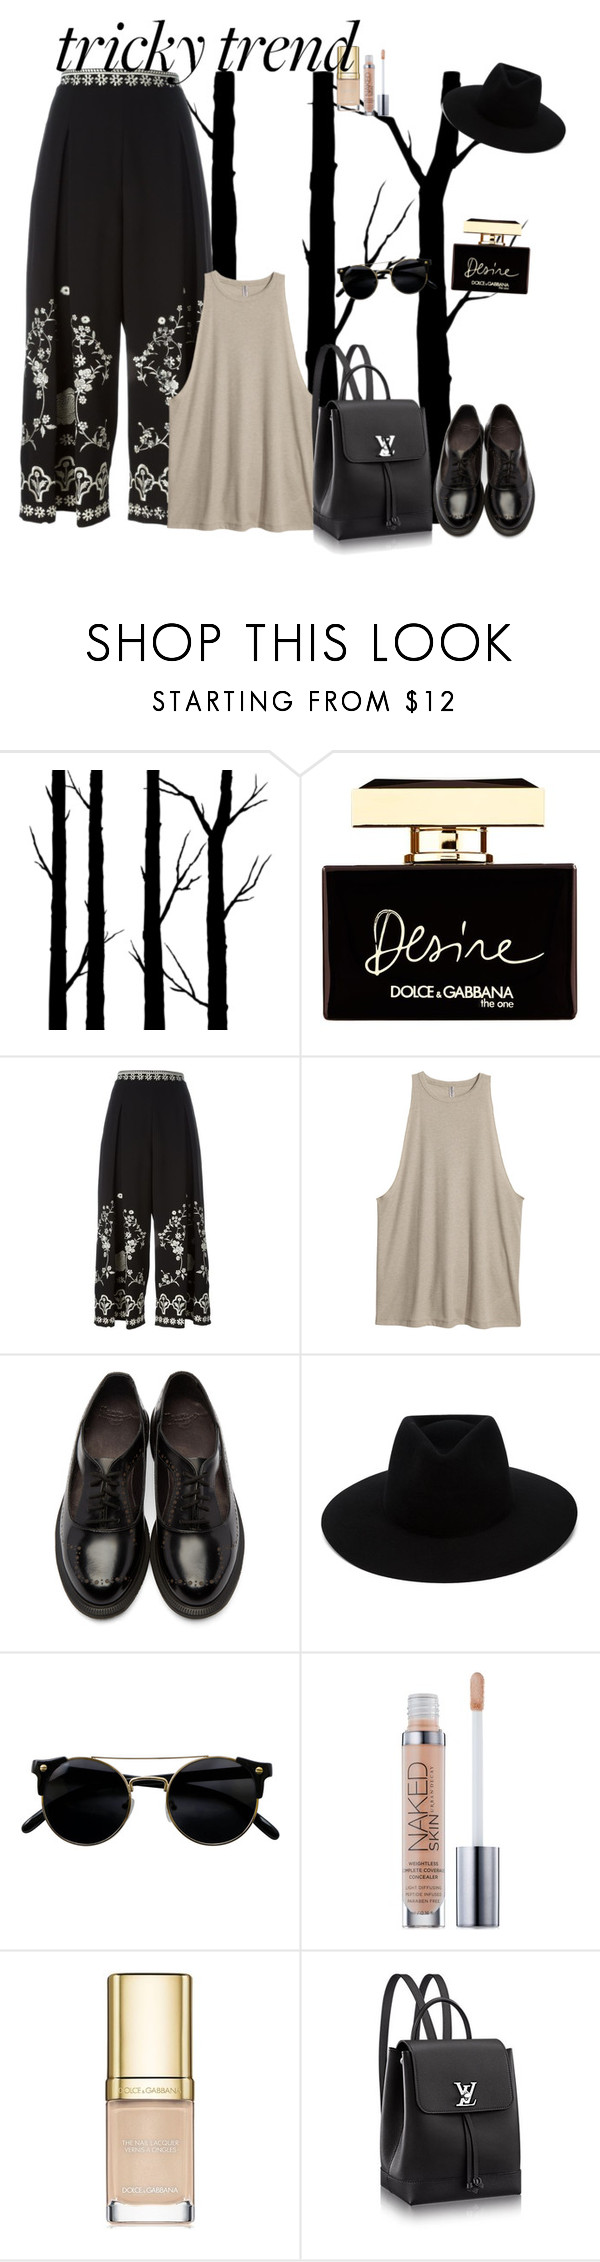 """""""#Culottes"""" by pineapple205 ❤ liked on Polyvore featuring Dot & Bo, Dolce&Gabbana, Temperley London, Dr. Martens, rag & bone and Urban Decay"""